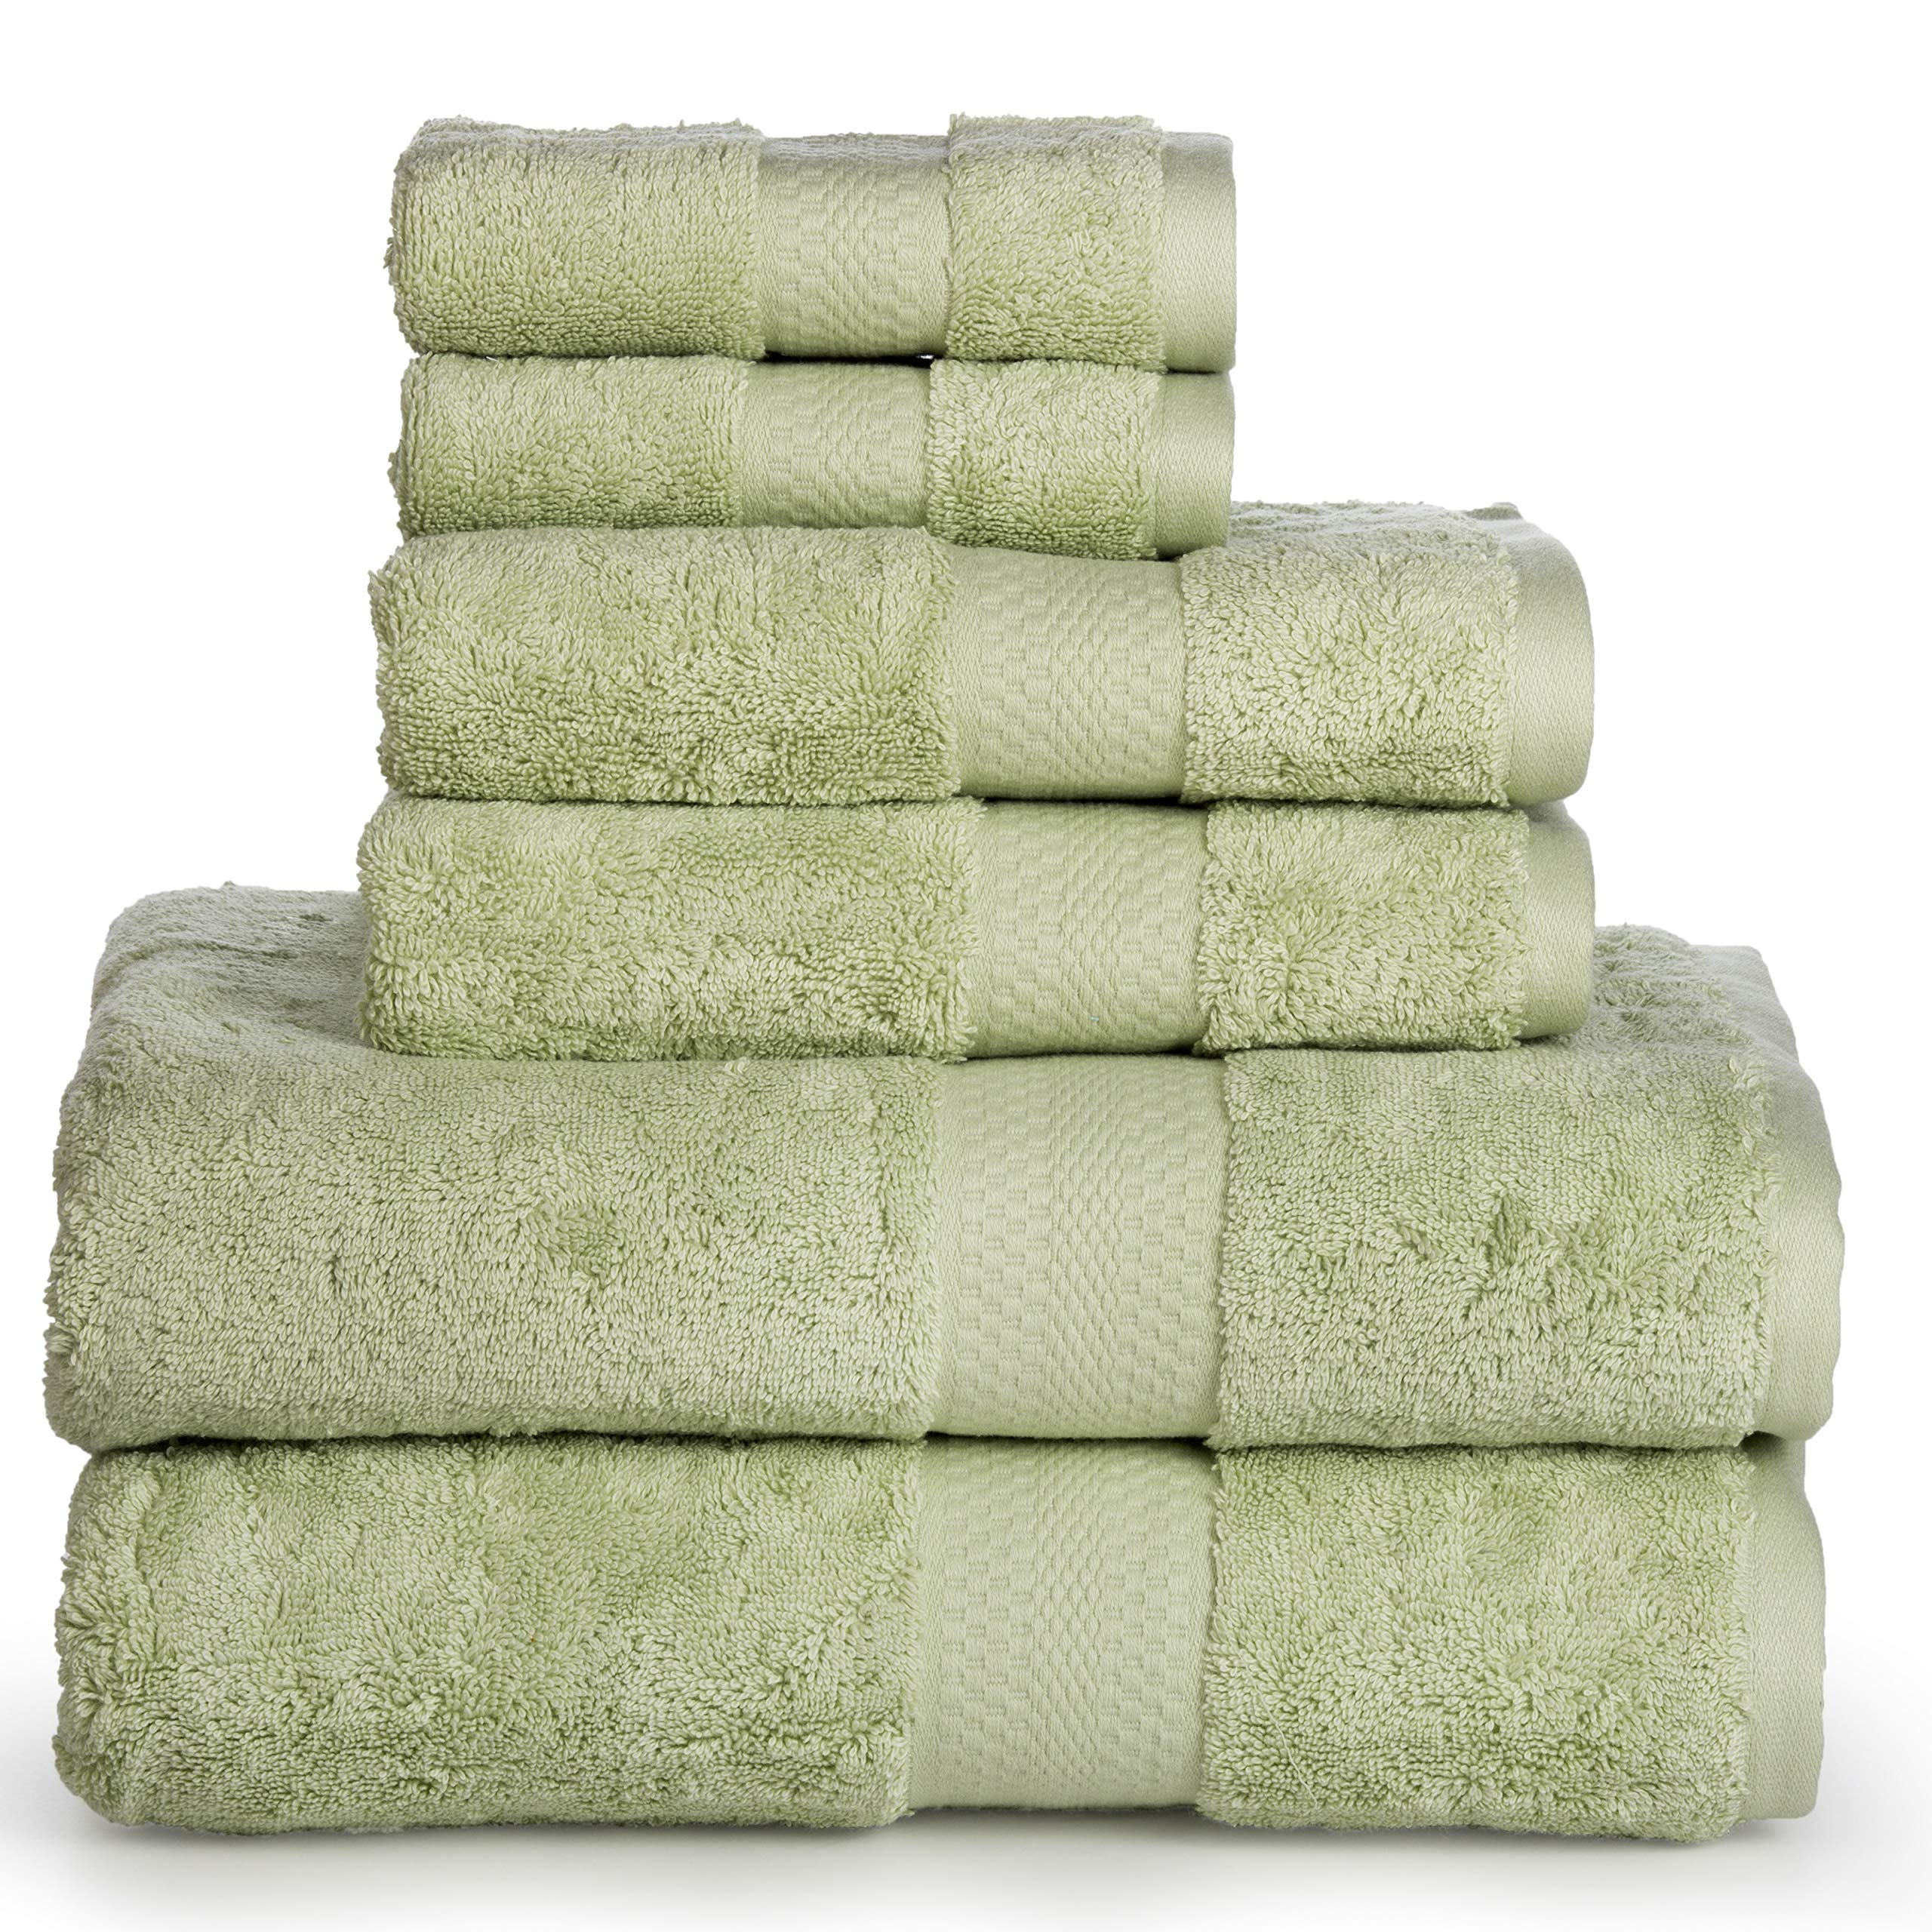 Luxury Cotton Bathroom Bath Towels: 6 Piece Towel Set for Household Bathrooms - Soft Plush and Absorbent Cotton with Double Stitch Hems - Bath / Shower Towels, Hand Towels, and Washcloths - SEA FOAM